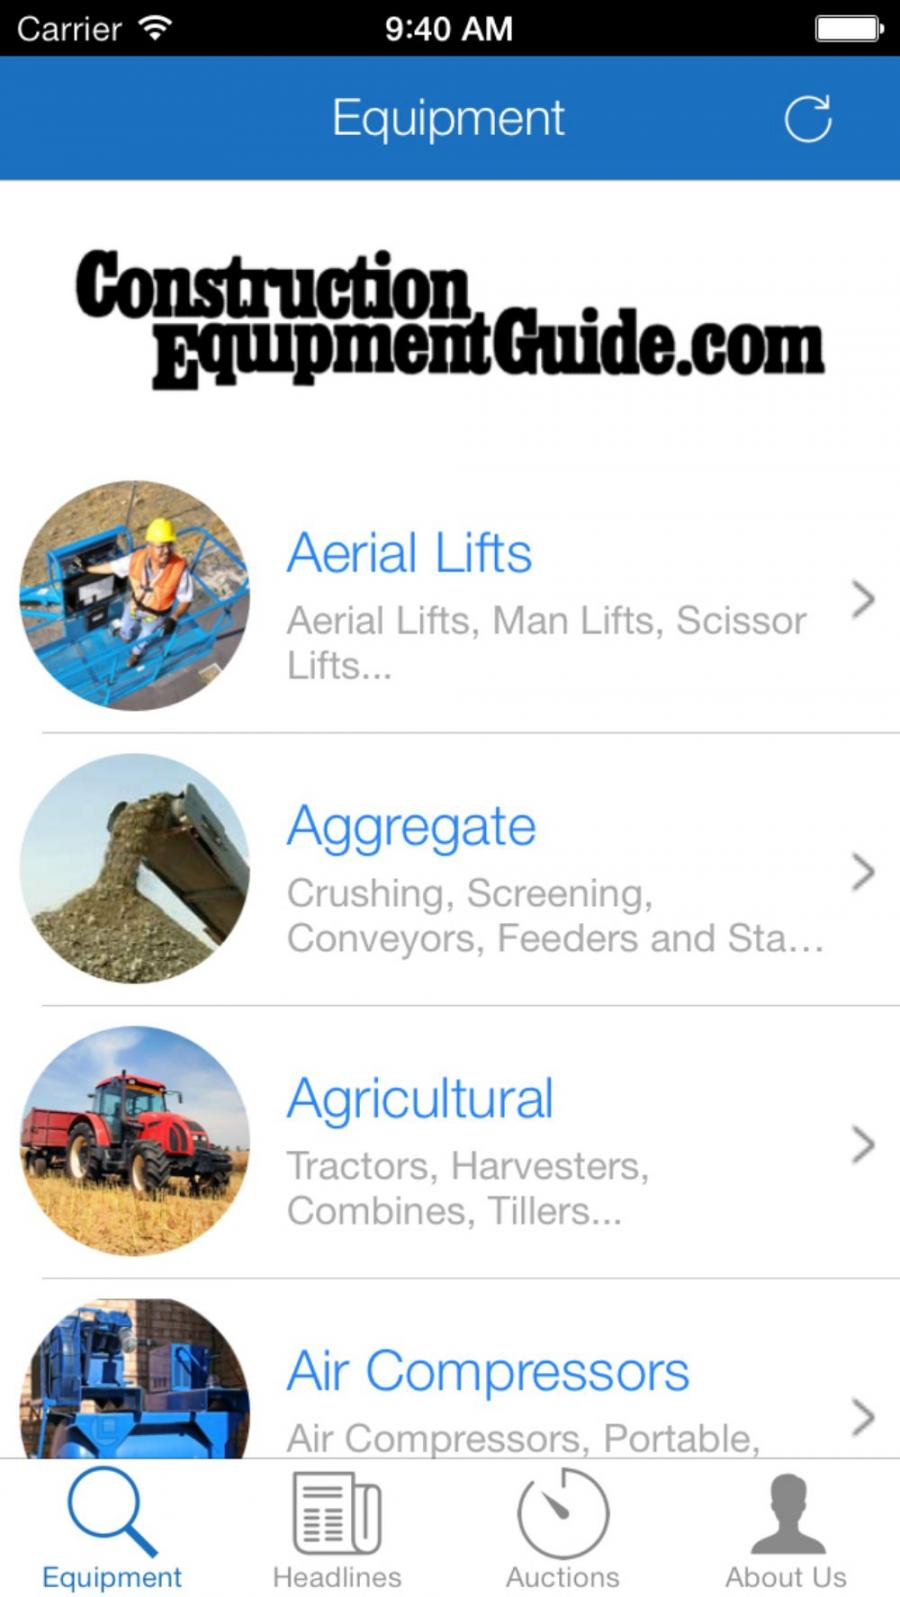 The new Construction Equipment Guide app will be available soon for download through iTunes and through the Google Play Store.